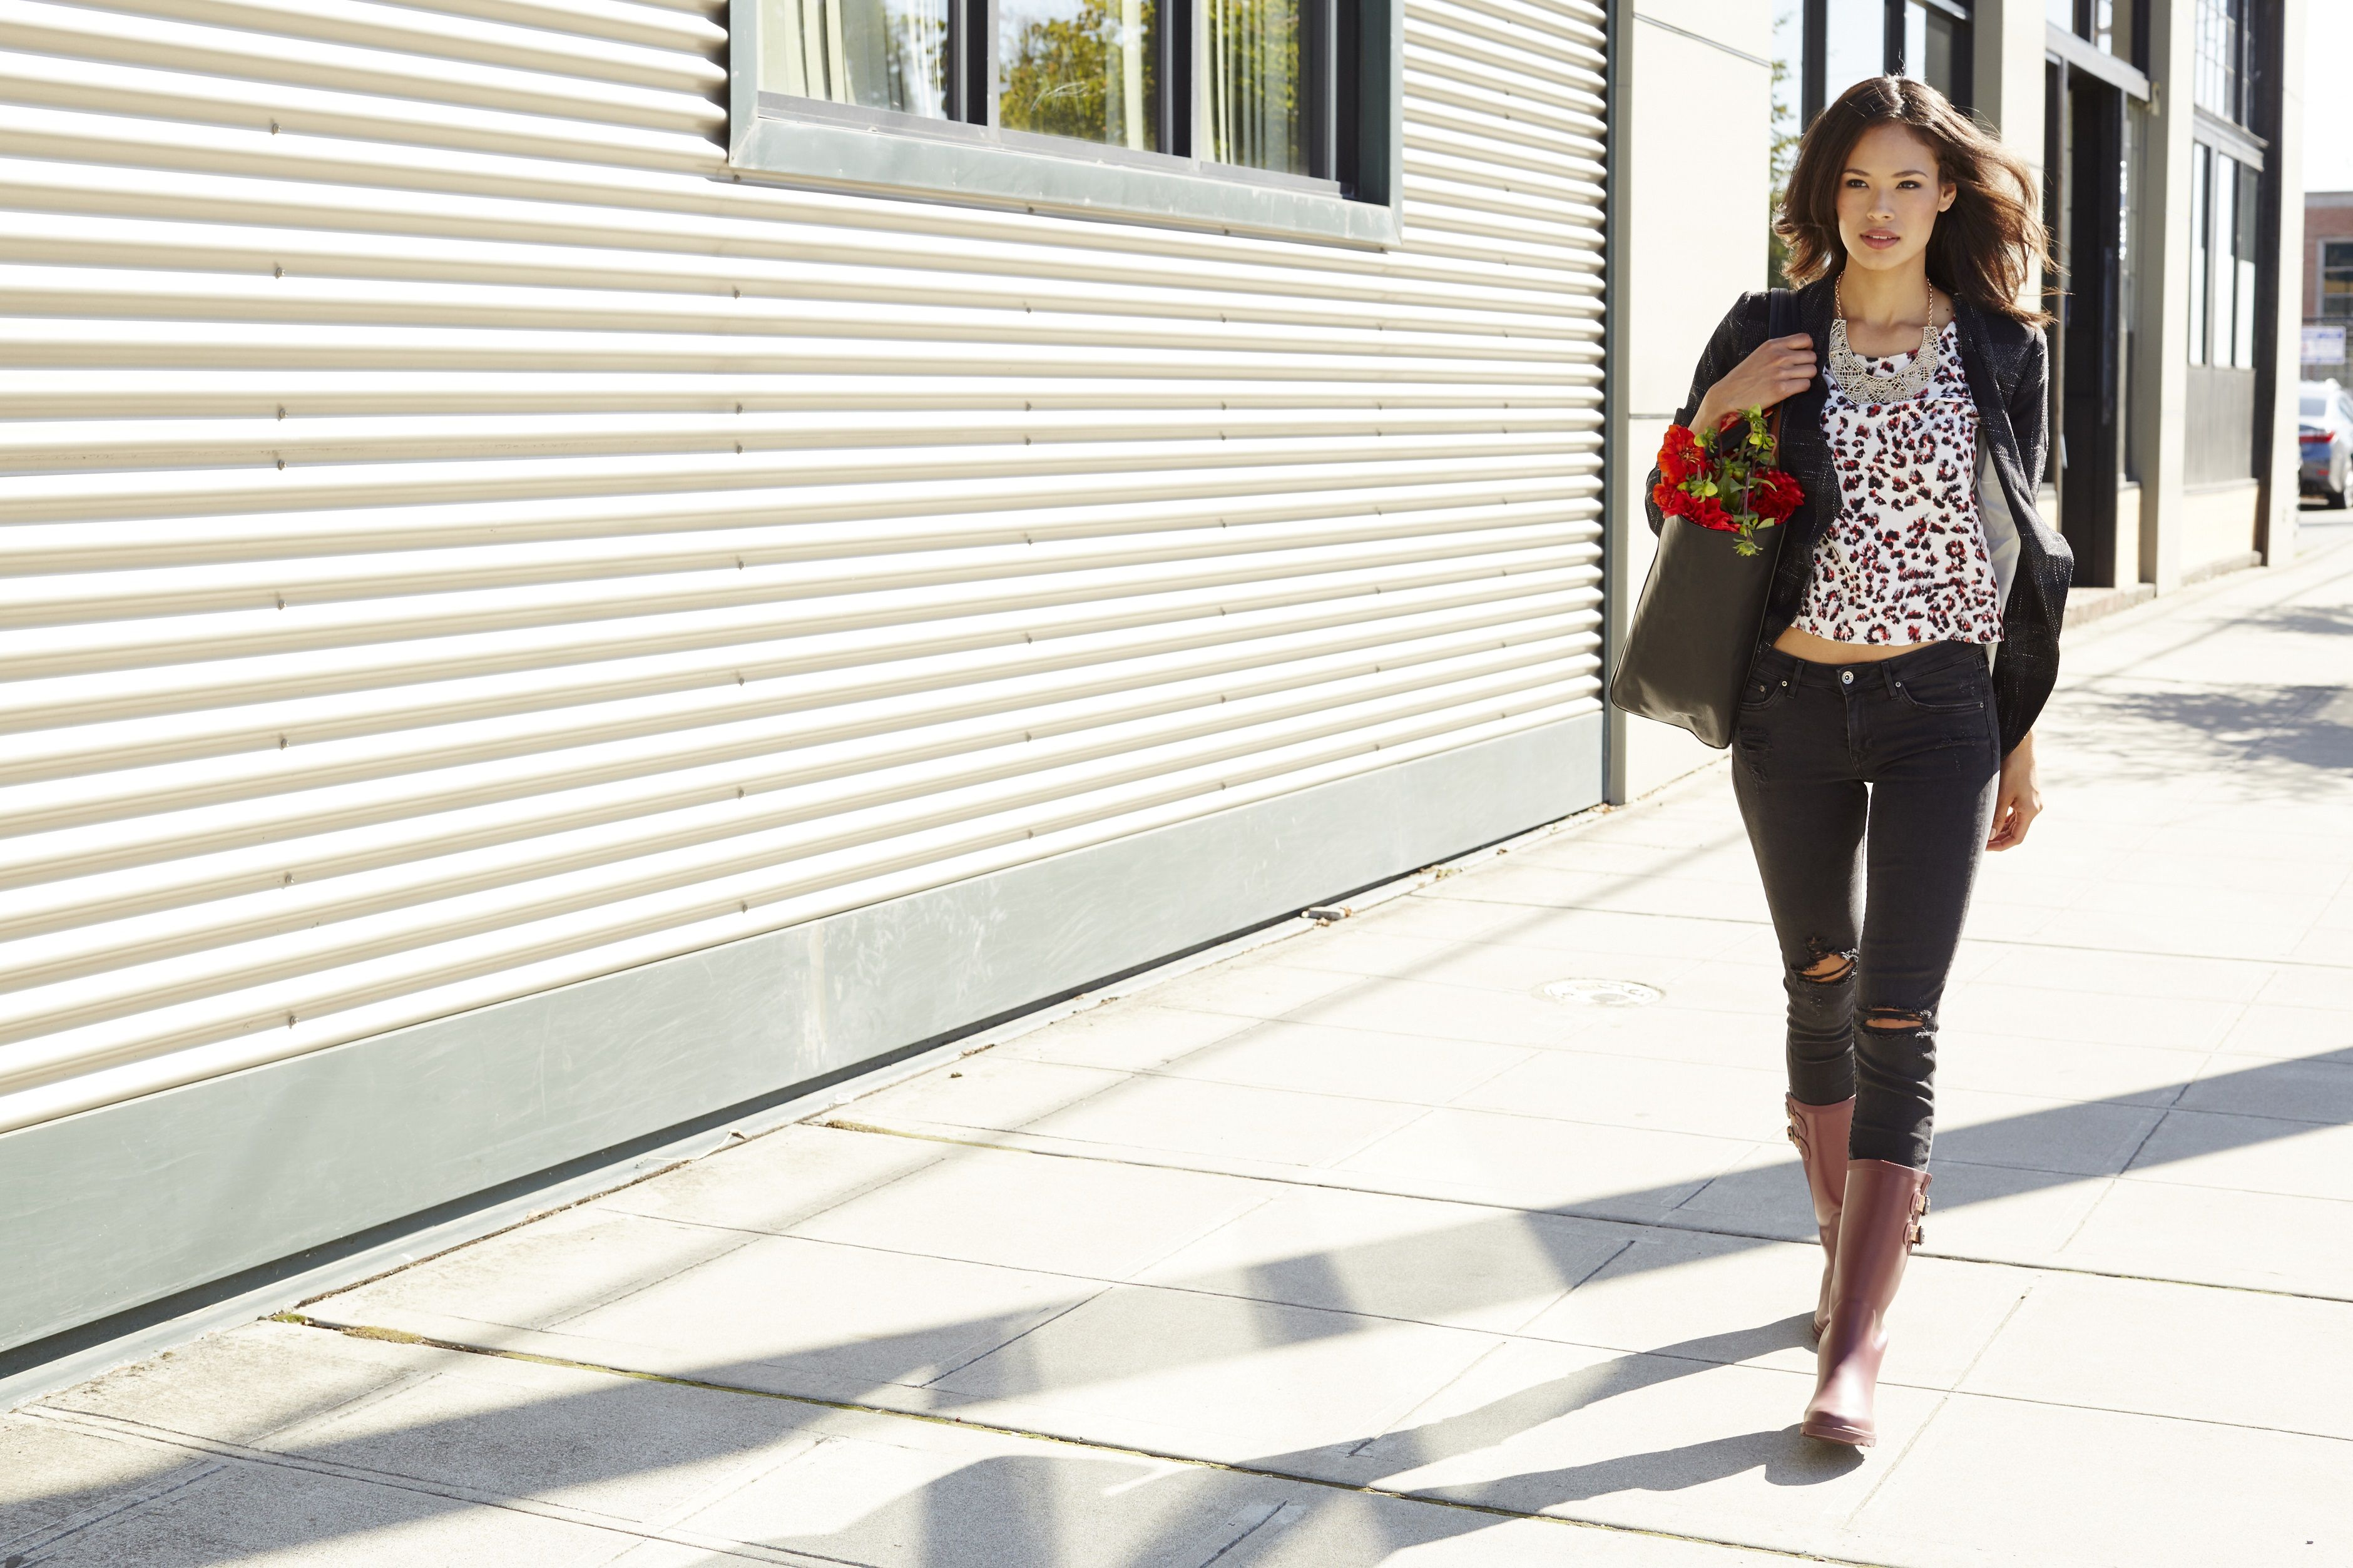 Rain boots for city living! Chooka 'top solid' boots